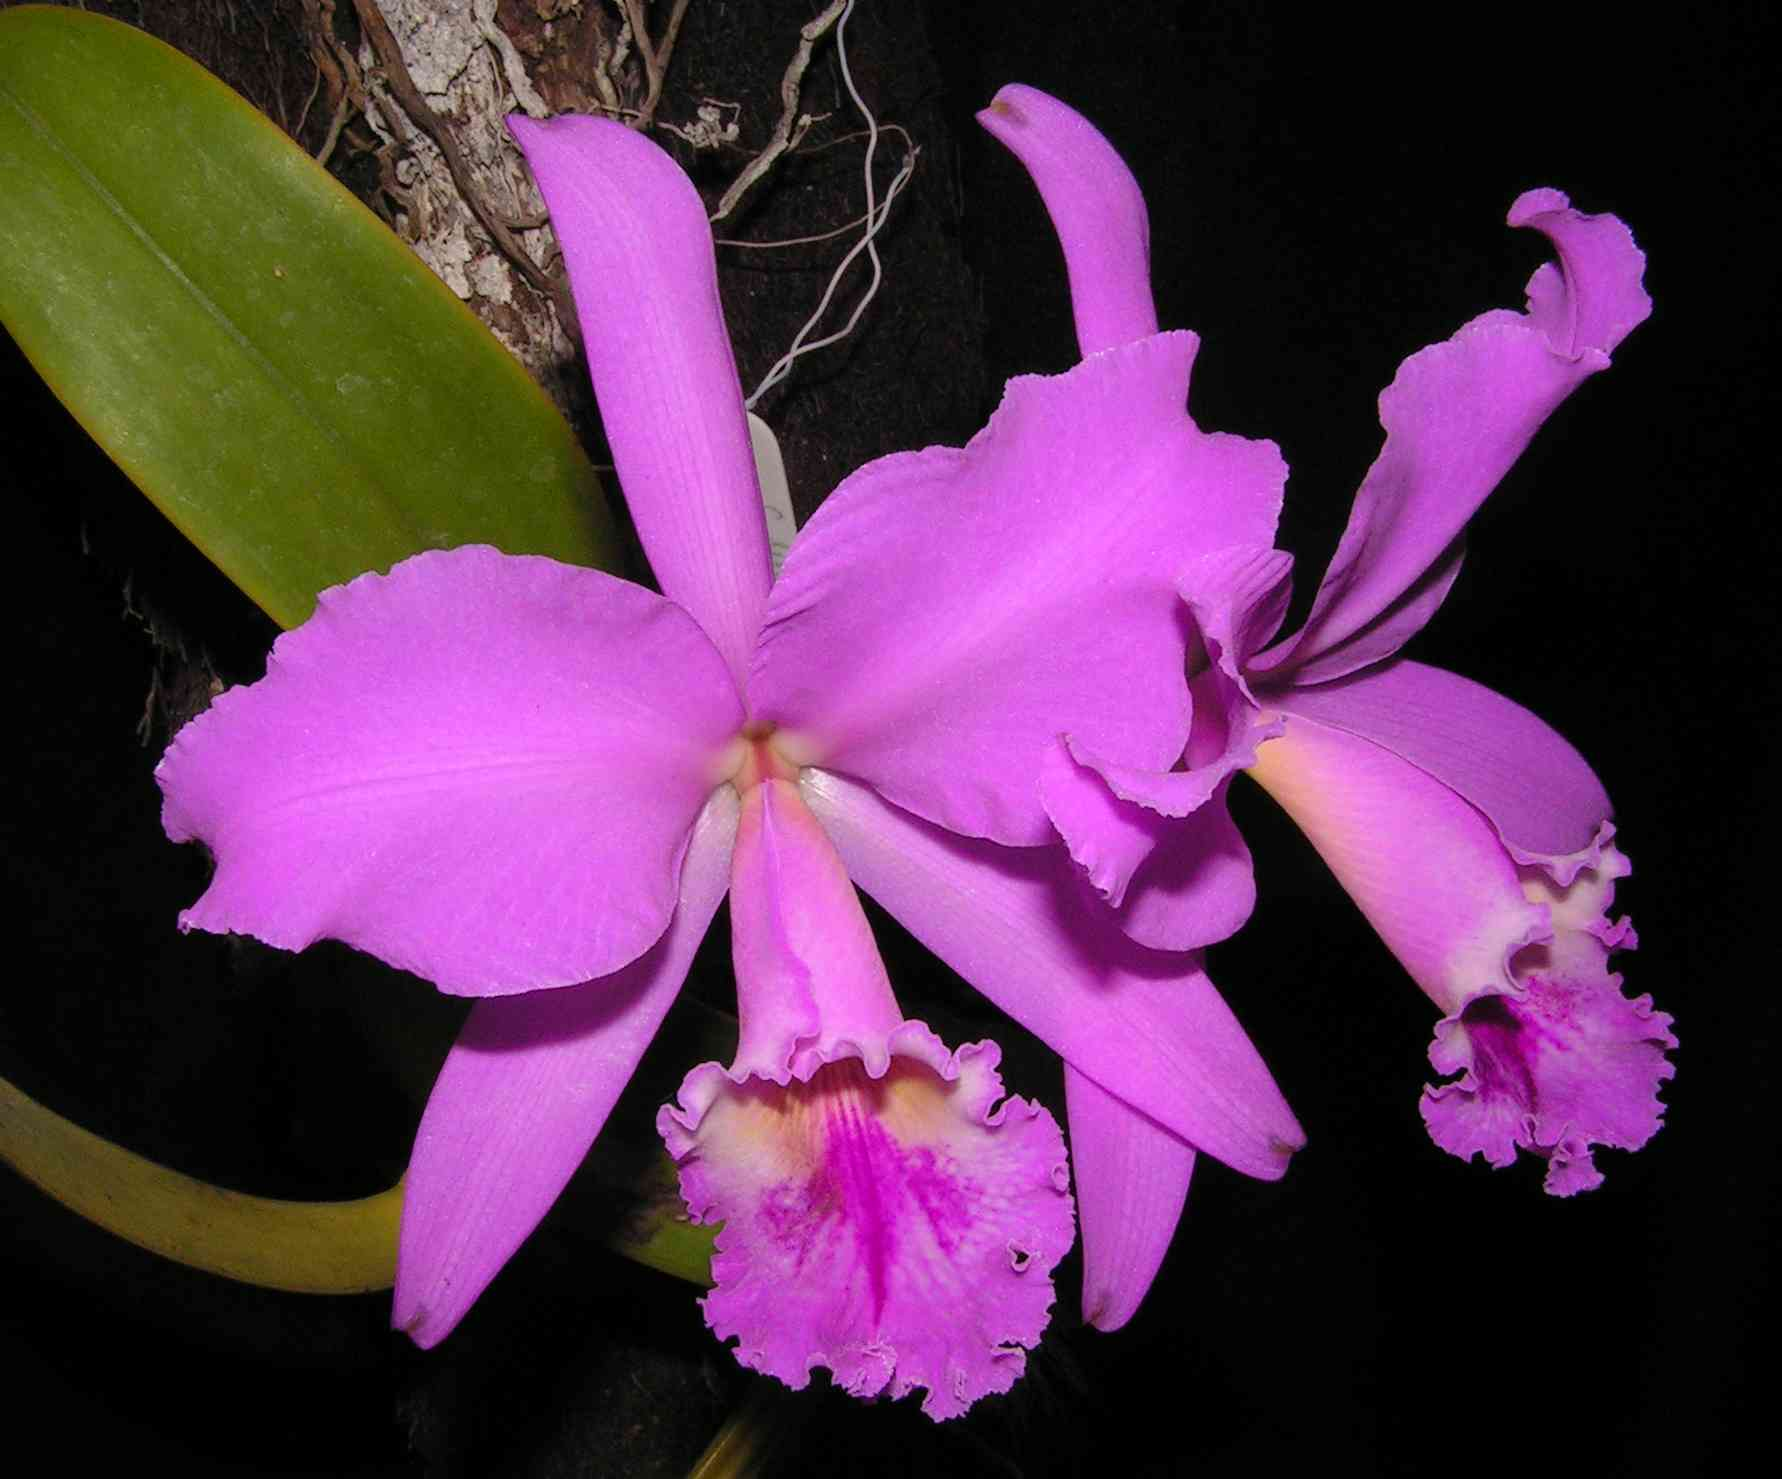 Cattleya labiata Lindley